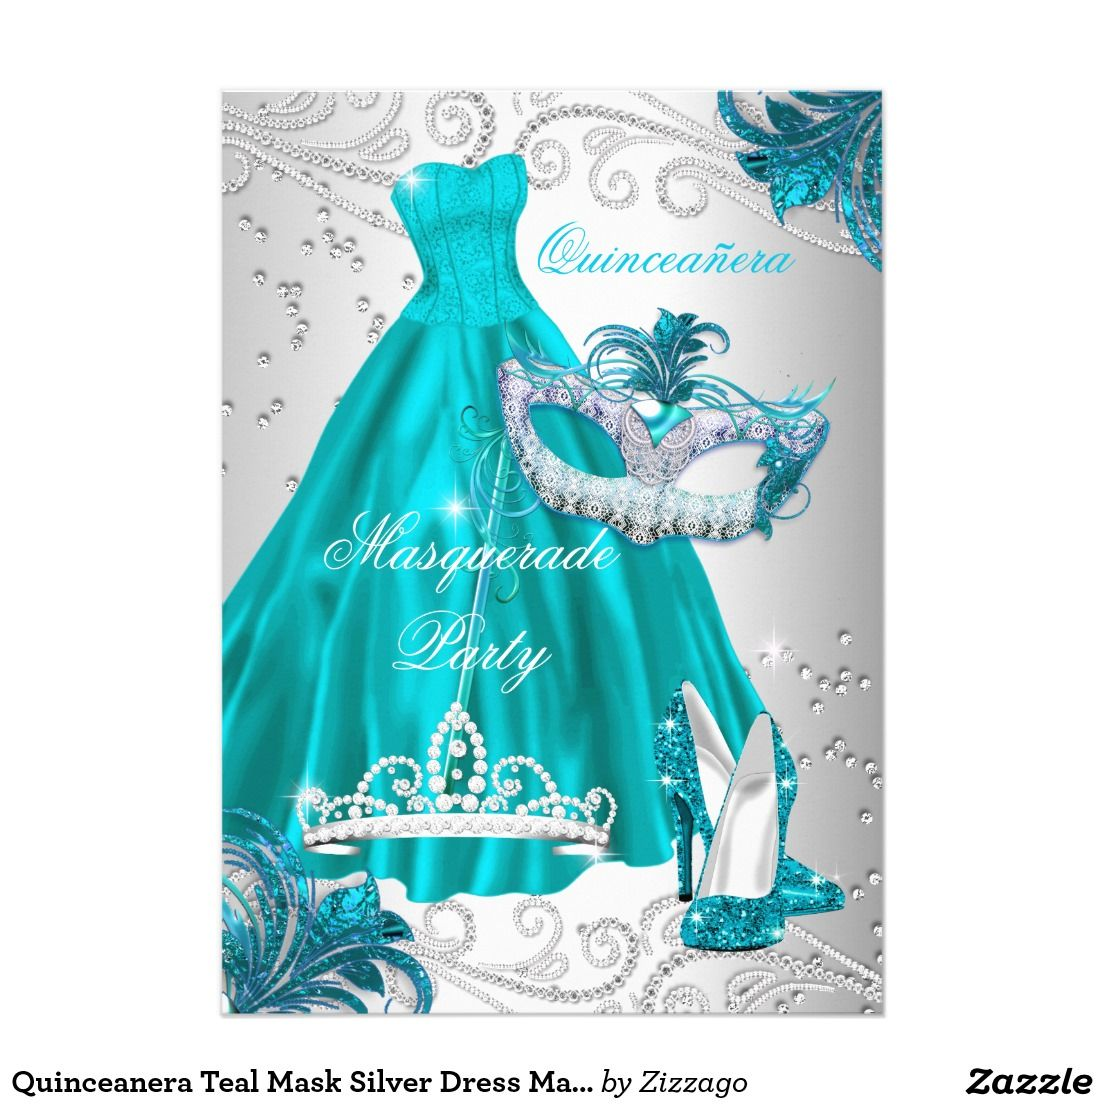 Quinceanera Teal Mask Silver Dress Masquerade Blue Card ...